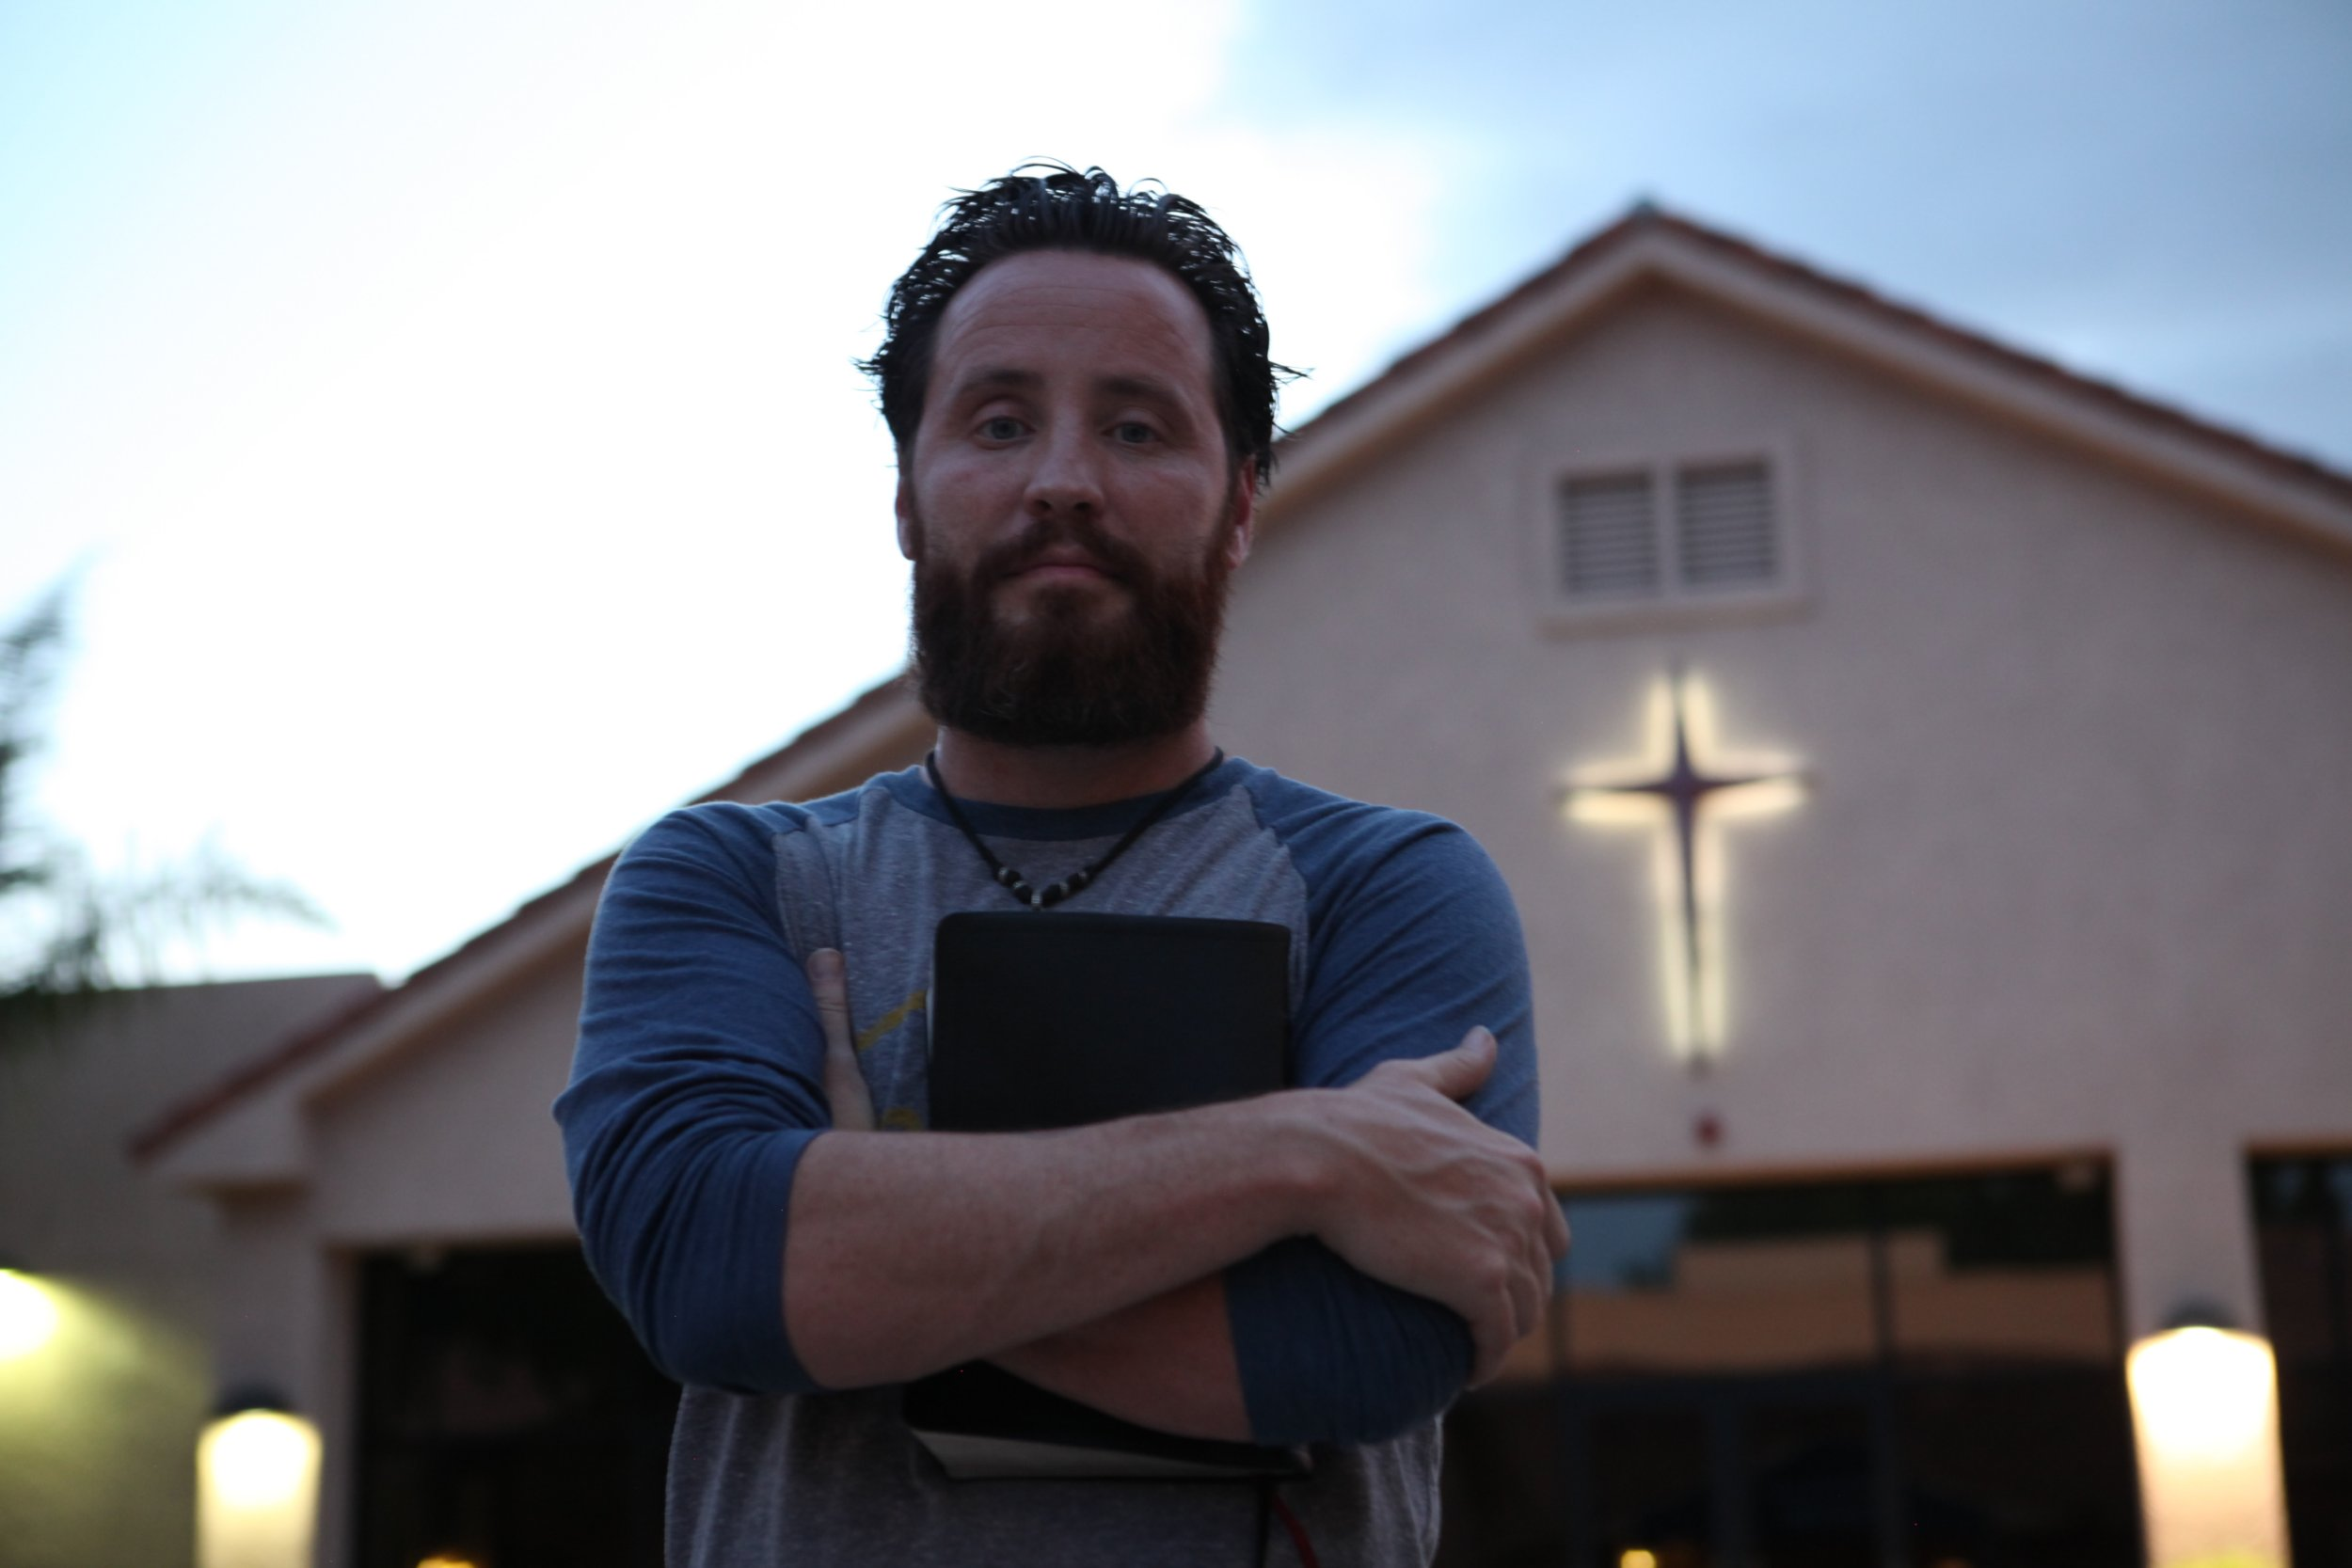 *** EXCLUSIVE - VIDEO AVAILABLE *** TEMPE, AZ - AUGUST 1: Jeff Durbin, pastor at Apologia Church, clutches a Bible to his chest in front of the church building, complete with glowing cross, on August 1, 2016, in Tempe, Arizona. A MODERN pro-life church who believe that women should get the death penalty for intentionally aborting their babies are looking to change the face of the anti-abortion movement in the US. With his immaculately groomed beard, tattoos and Aviator sunglasses, the Red Door Ministryís telegenic pastor, reformed drug addict Jeff Durbin, 38, looks every inch the young, modern-day American hipster. But the groupís views are resolutely old school - they say abortion is ëworse than the Holocaustí and regularly enlist children as young as two to picket Planned Parenthood clinics, armed with signs reading 'Babies are murdered hereí. Based in Tempe, Arizona, the ministry is run by the Apologia Church, a militantly pro-life group campaigning to overturn Roe v Wade, the landmark 1973 Supreme Court ruling that gave women a constitutional right to an abortion in the early stages of pregnancy. The churchís critics accuse it of intimidating women seeking an abortion, but with US president Donald Trump pursuing an aggressively pro-life agenda, pro-choice campaigners fear the right to a legal abortion in the US may be under threat. PHOTOGRAPH BY Ruaridh Connellan / Barcroft Images London-T:+44 207 033 1031 E:hello@barcroftmedia.com - New York-T:+1 212 796 2458 E:hello@barcroftusa.com - New Delhi-T:+91 11 4053 2429 E:hello@barcroftindia.com www.barcroftimages.com